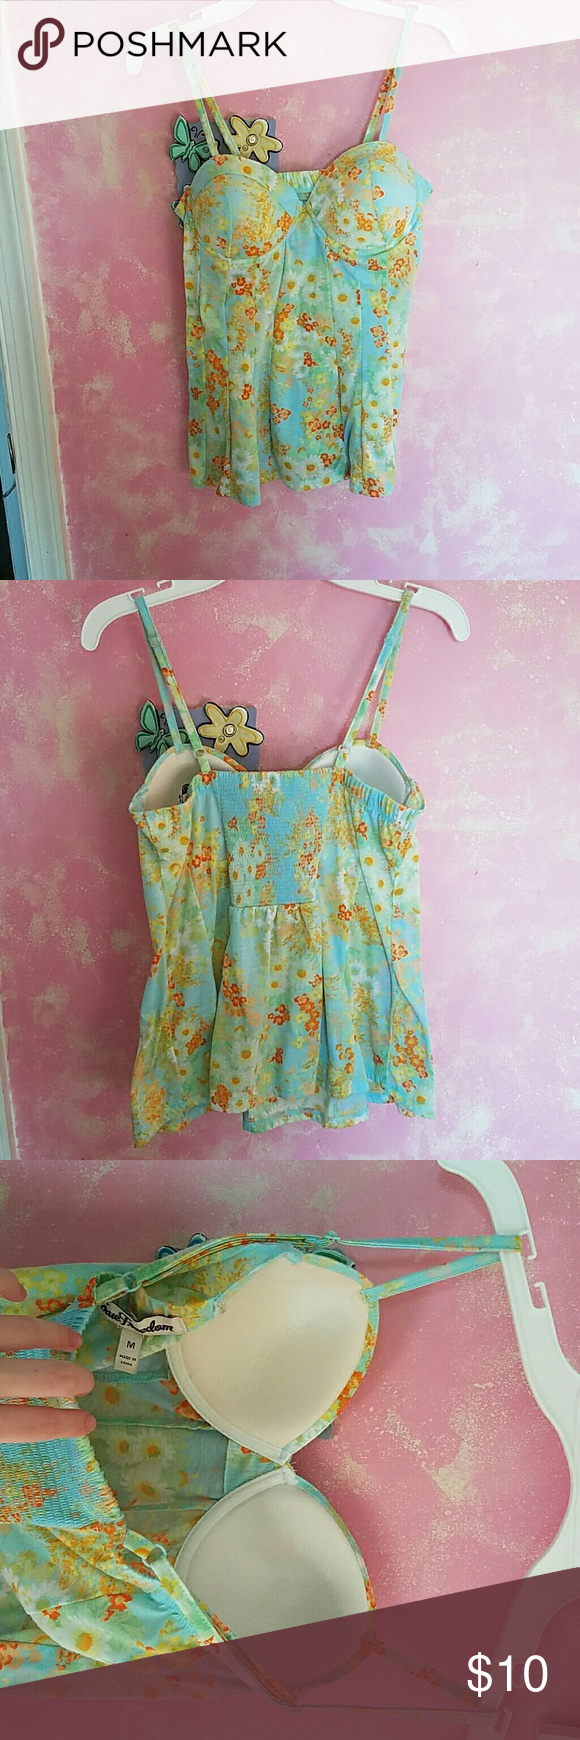 Spring/Summer cupped tank. A floral cupped tank. I do not know cup size. Only worn once. No trades.  Smoke free home.  No flaws. True Freedom Tops Tank Tops